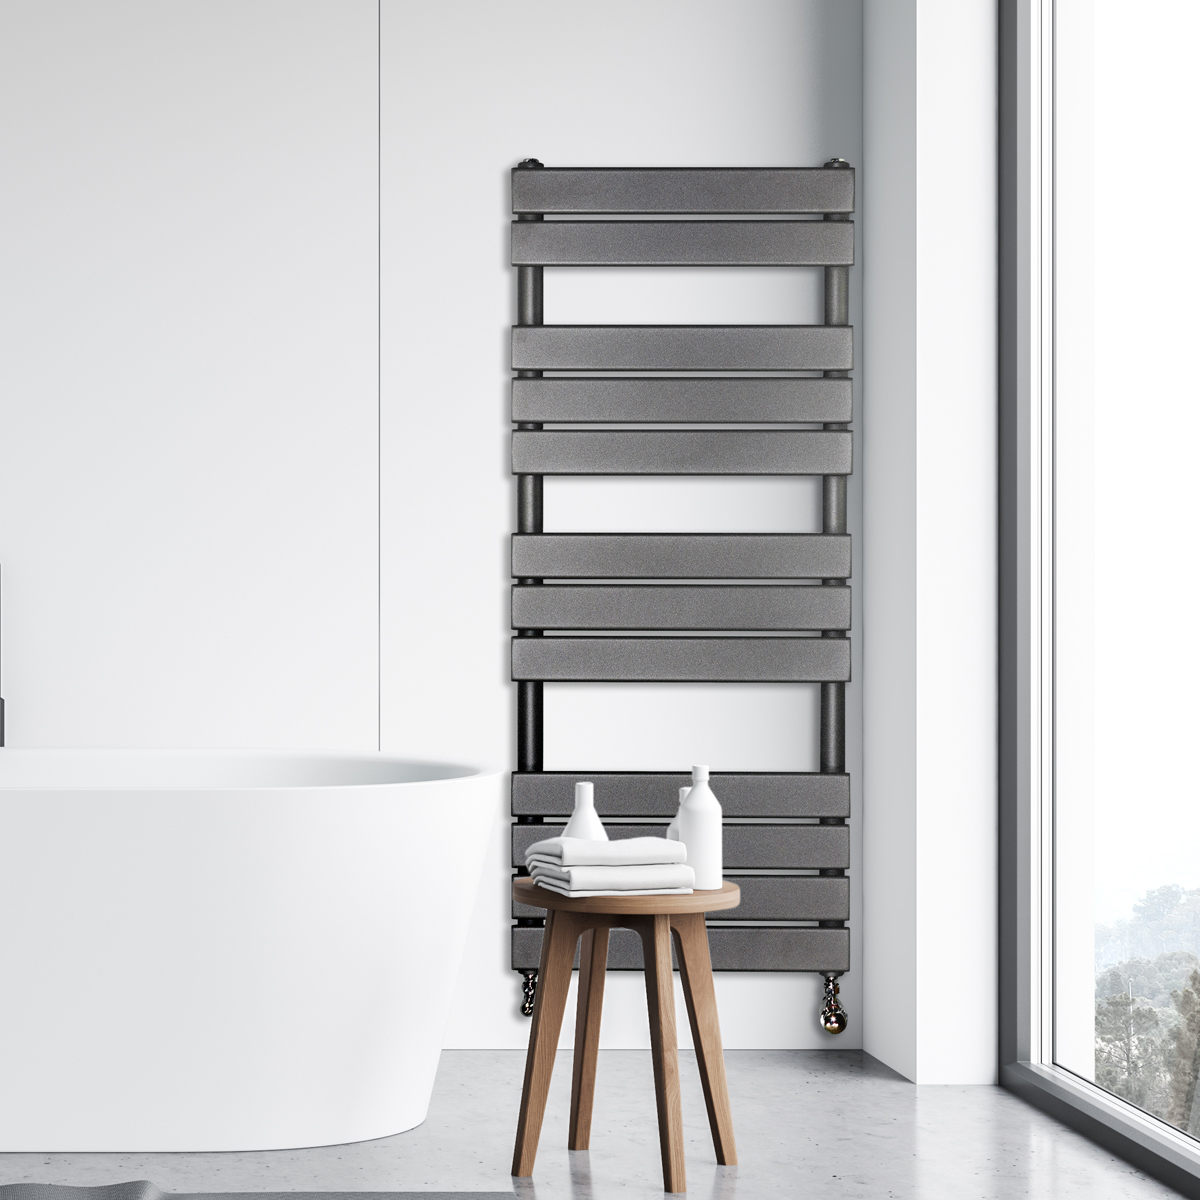 Adige Designer Towel Radiator Grey Medium RAD-AF-FR01005G